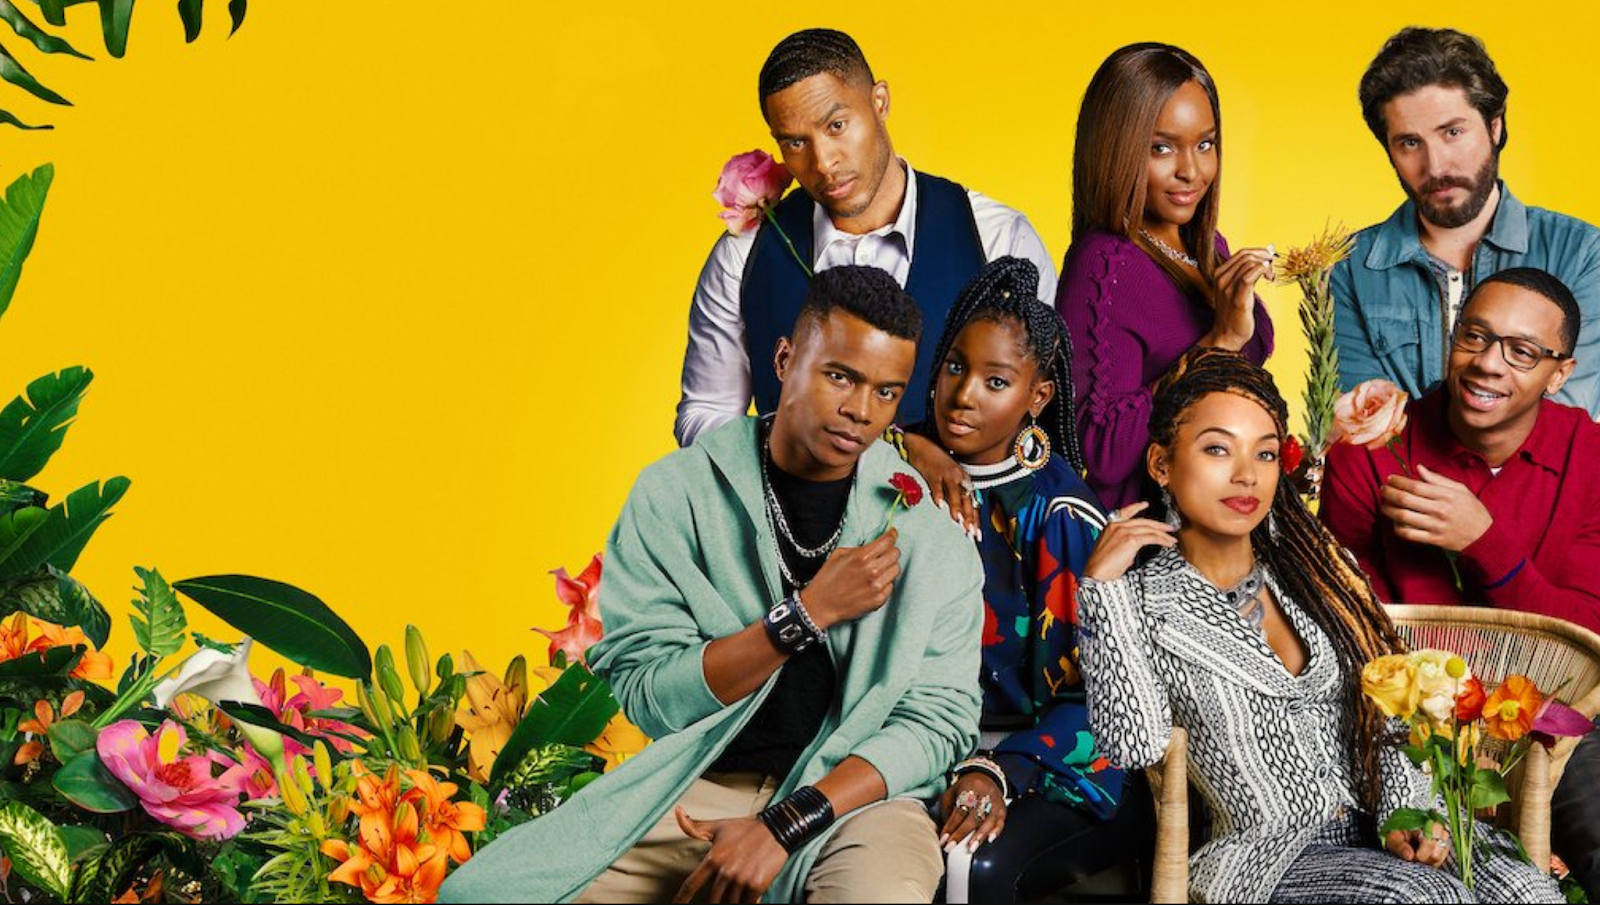 Black Shows on Streaming You Need to Watch